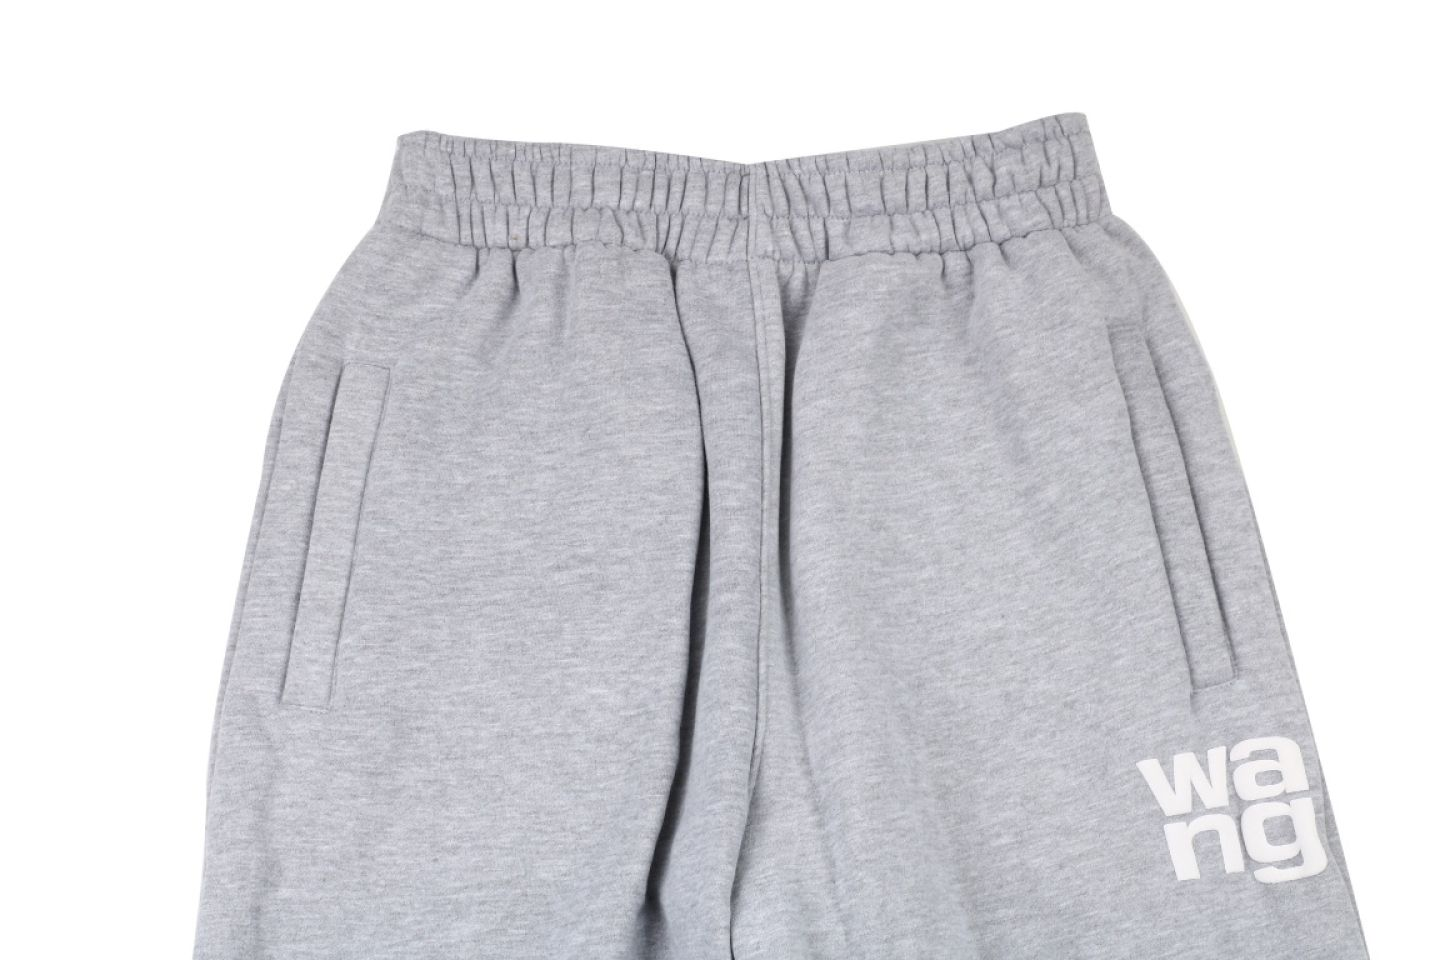 Pants Alexander Wang velvet sweatpants 2 alexander_wang_velvet_sweatpants_2